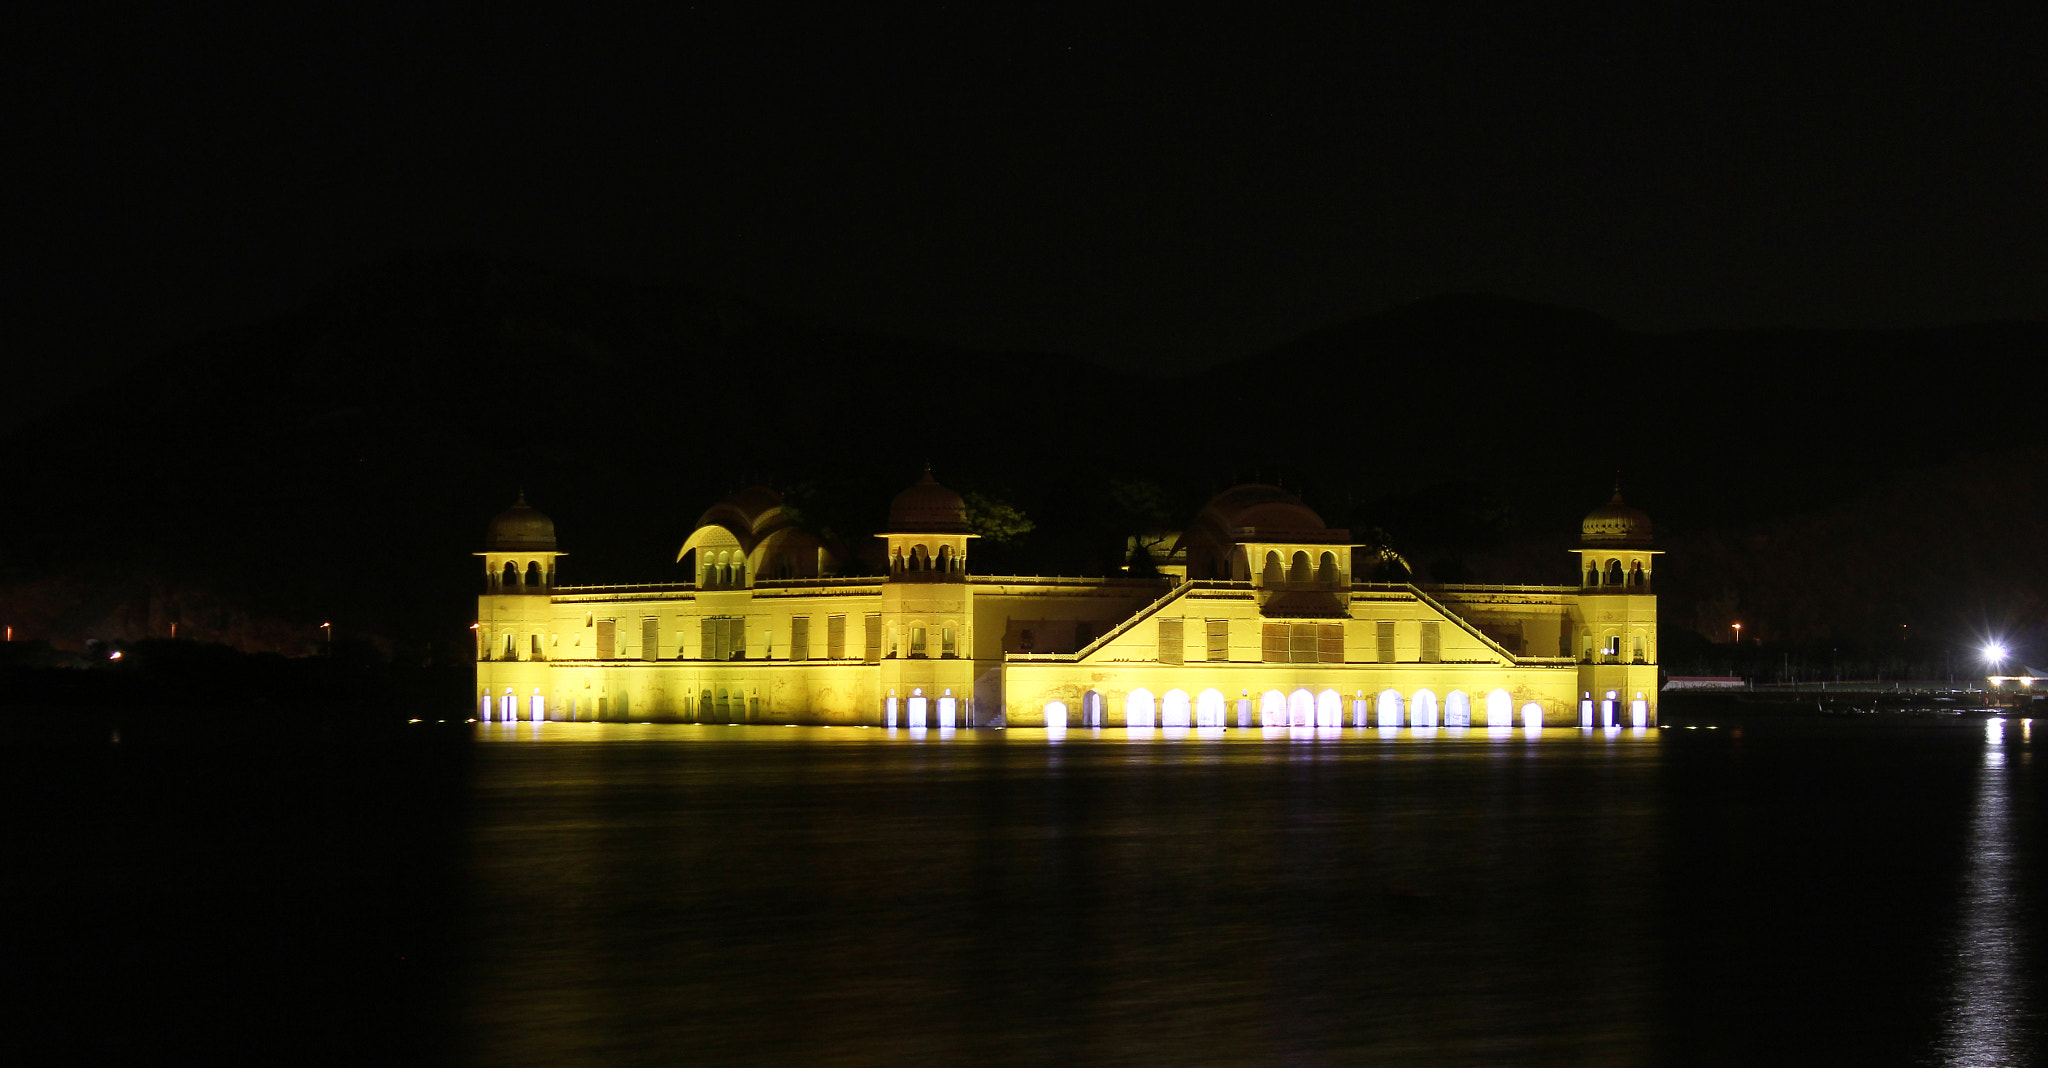 Photograph Jal Mahal At Night by Yashovardhan Sodhani on 500px